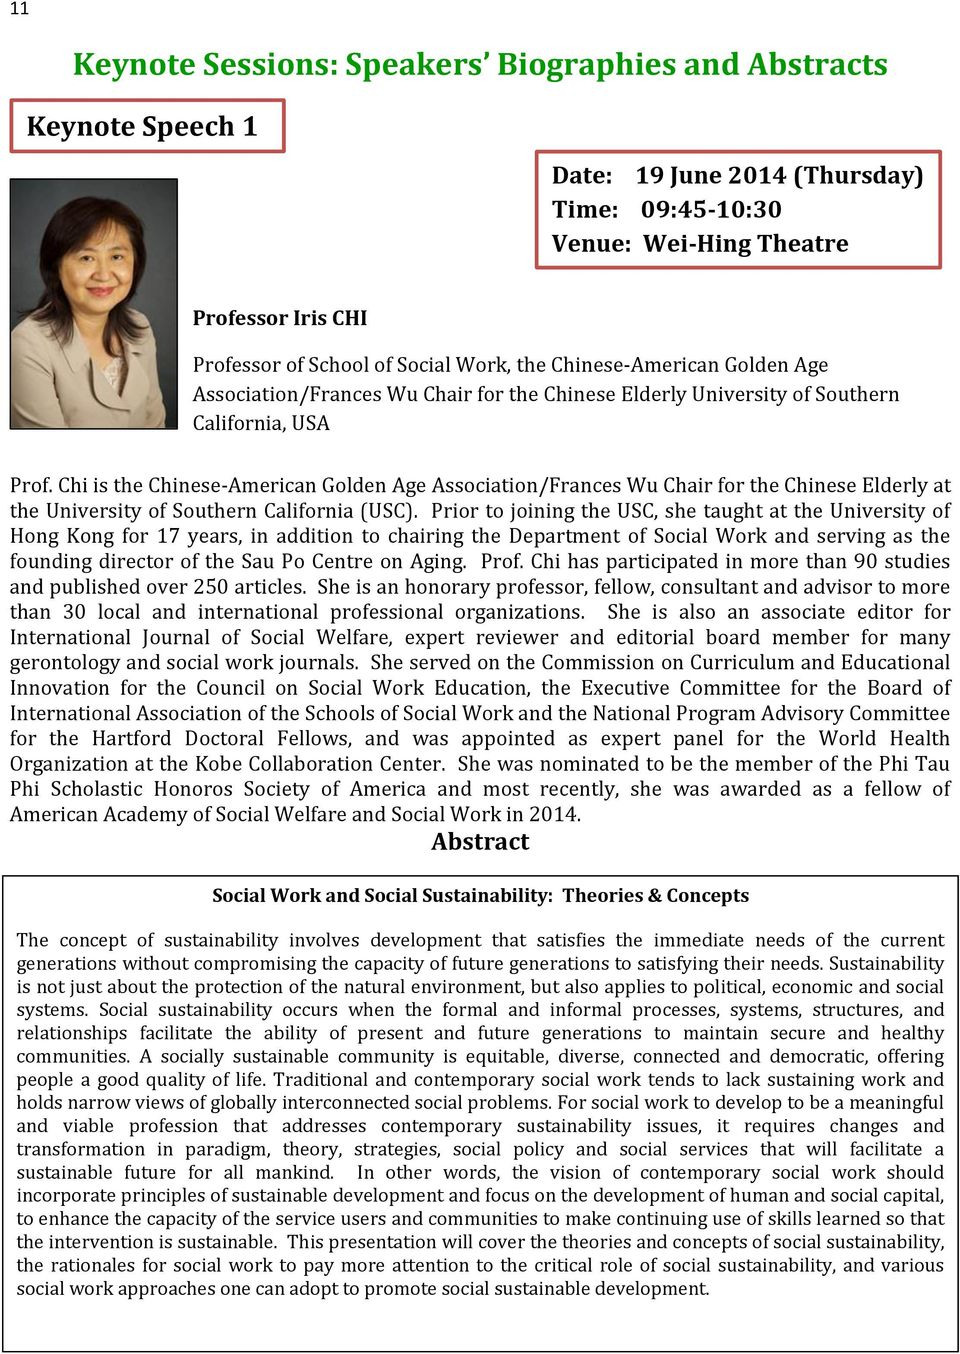 Chi is the Chinese-American Golden Age Association/Frances Wu Chair for the Chinese Elderly at the University of Southern California (USC).